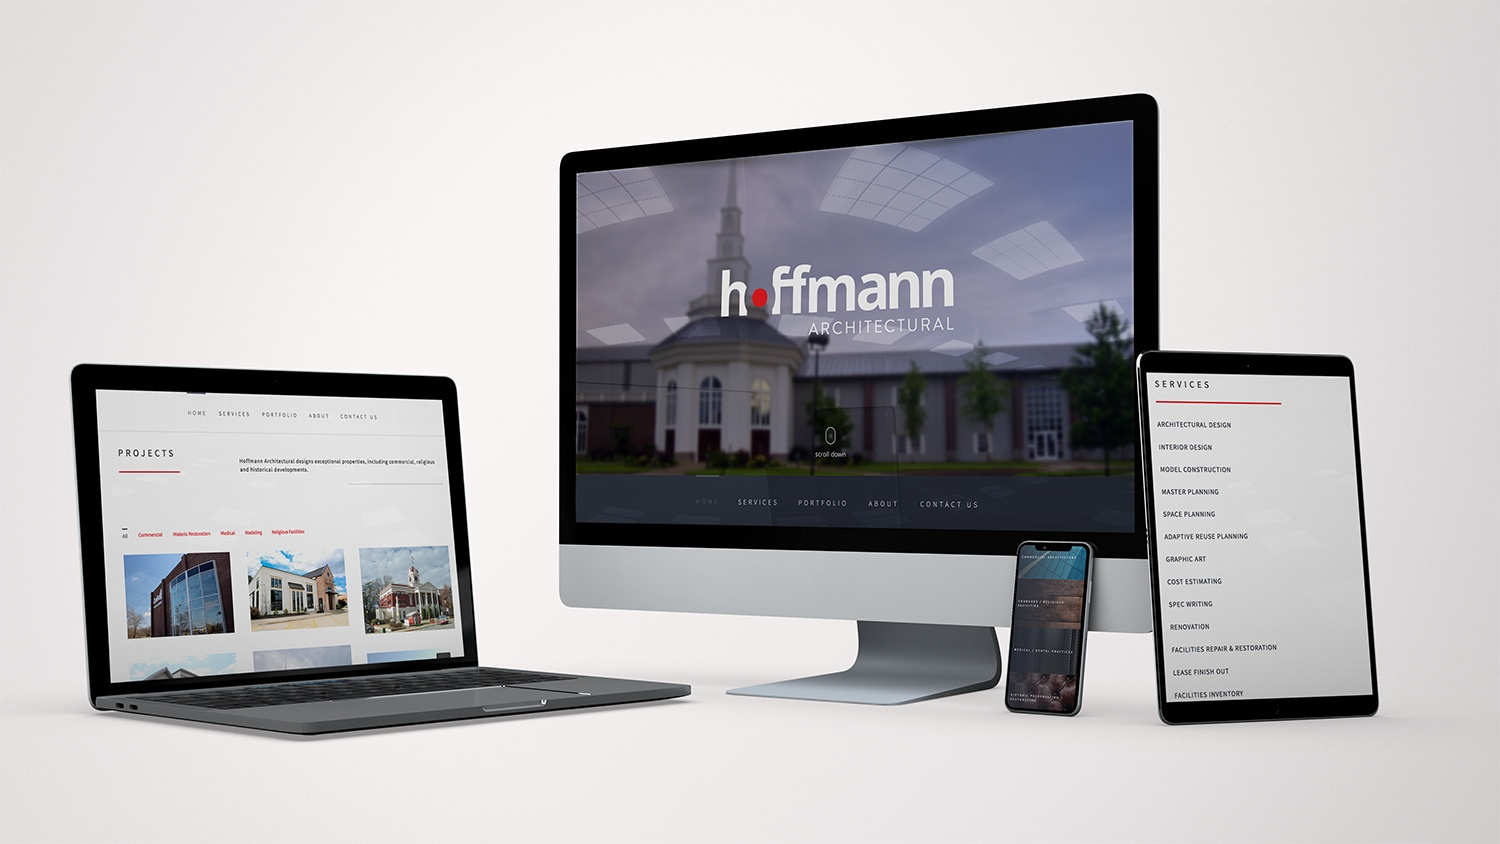 Hoffmann Architectural Website